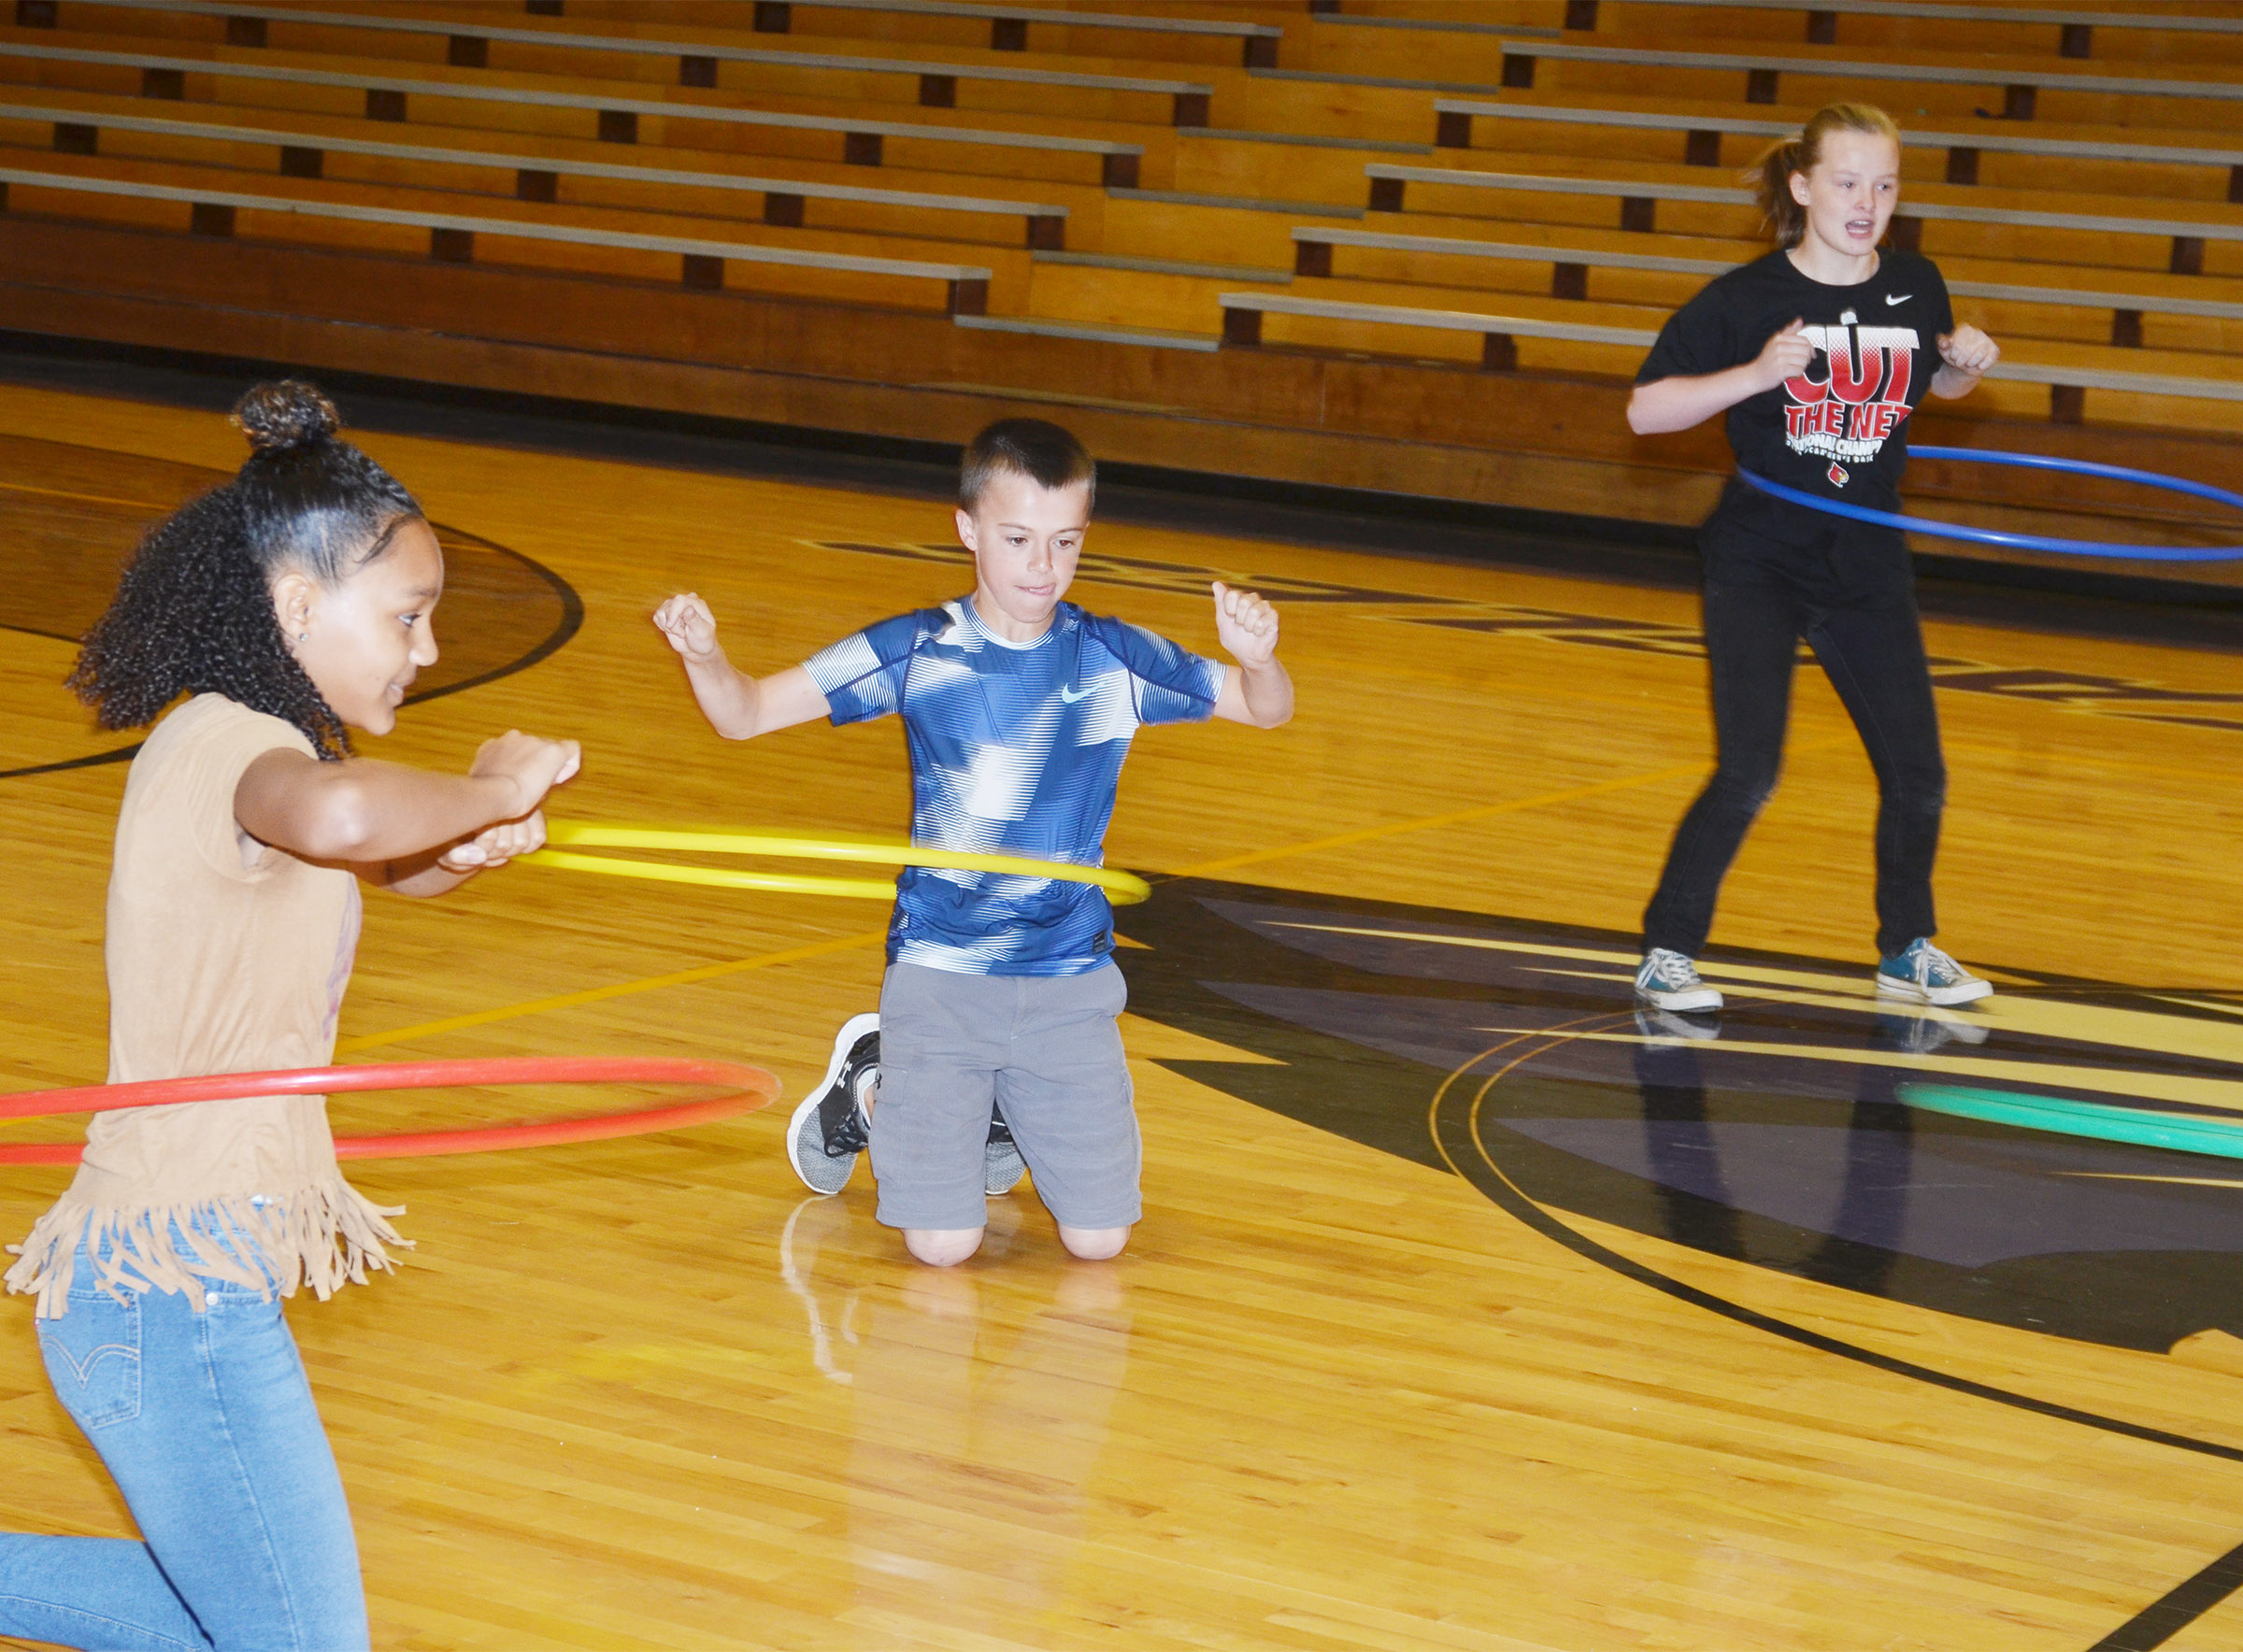 From left, CMS seventh-grader Alexis Thomas and sixth-graders Chase Hord and Davanna Reardon compete.